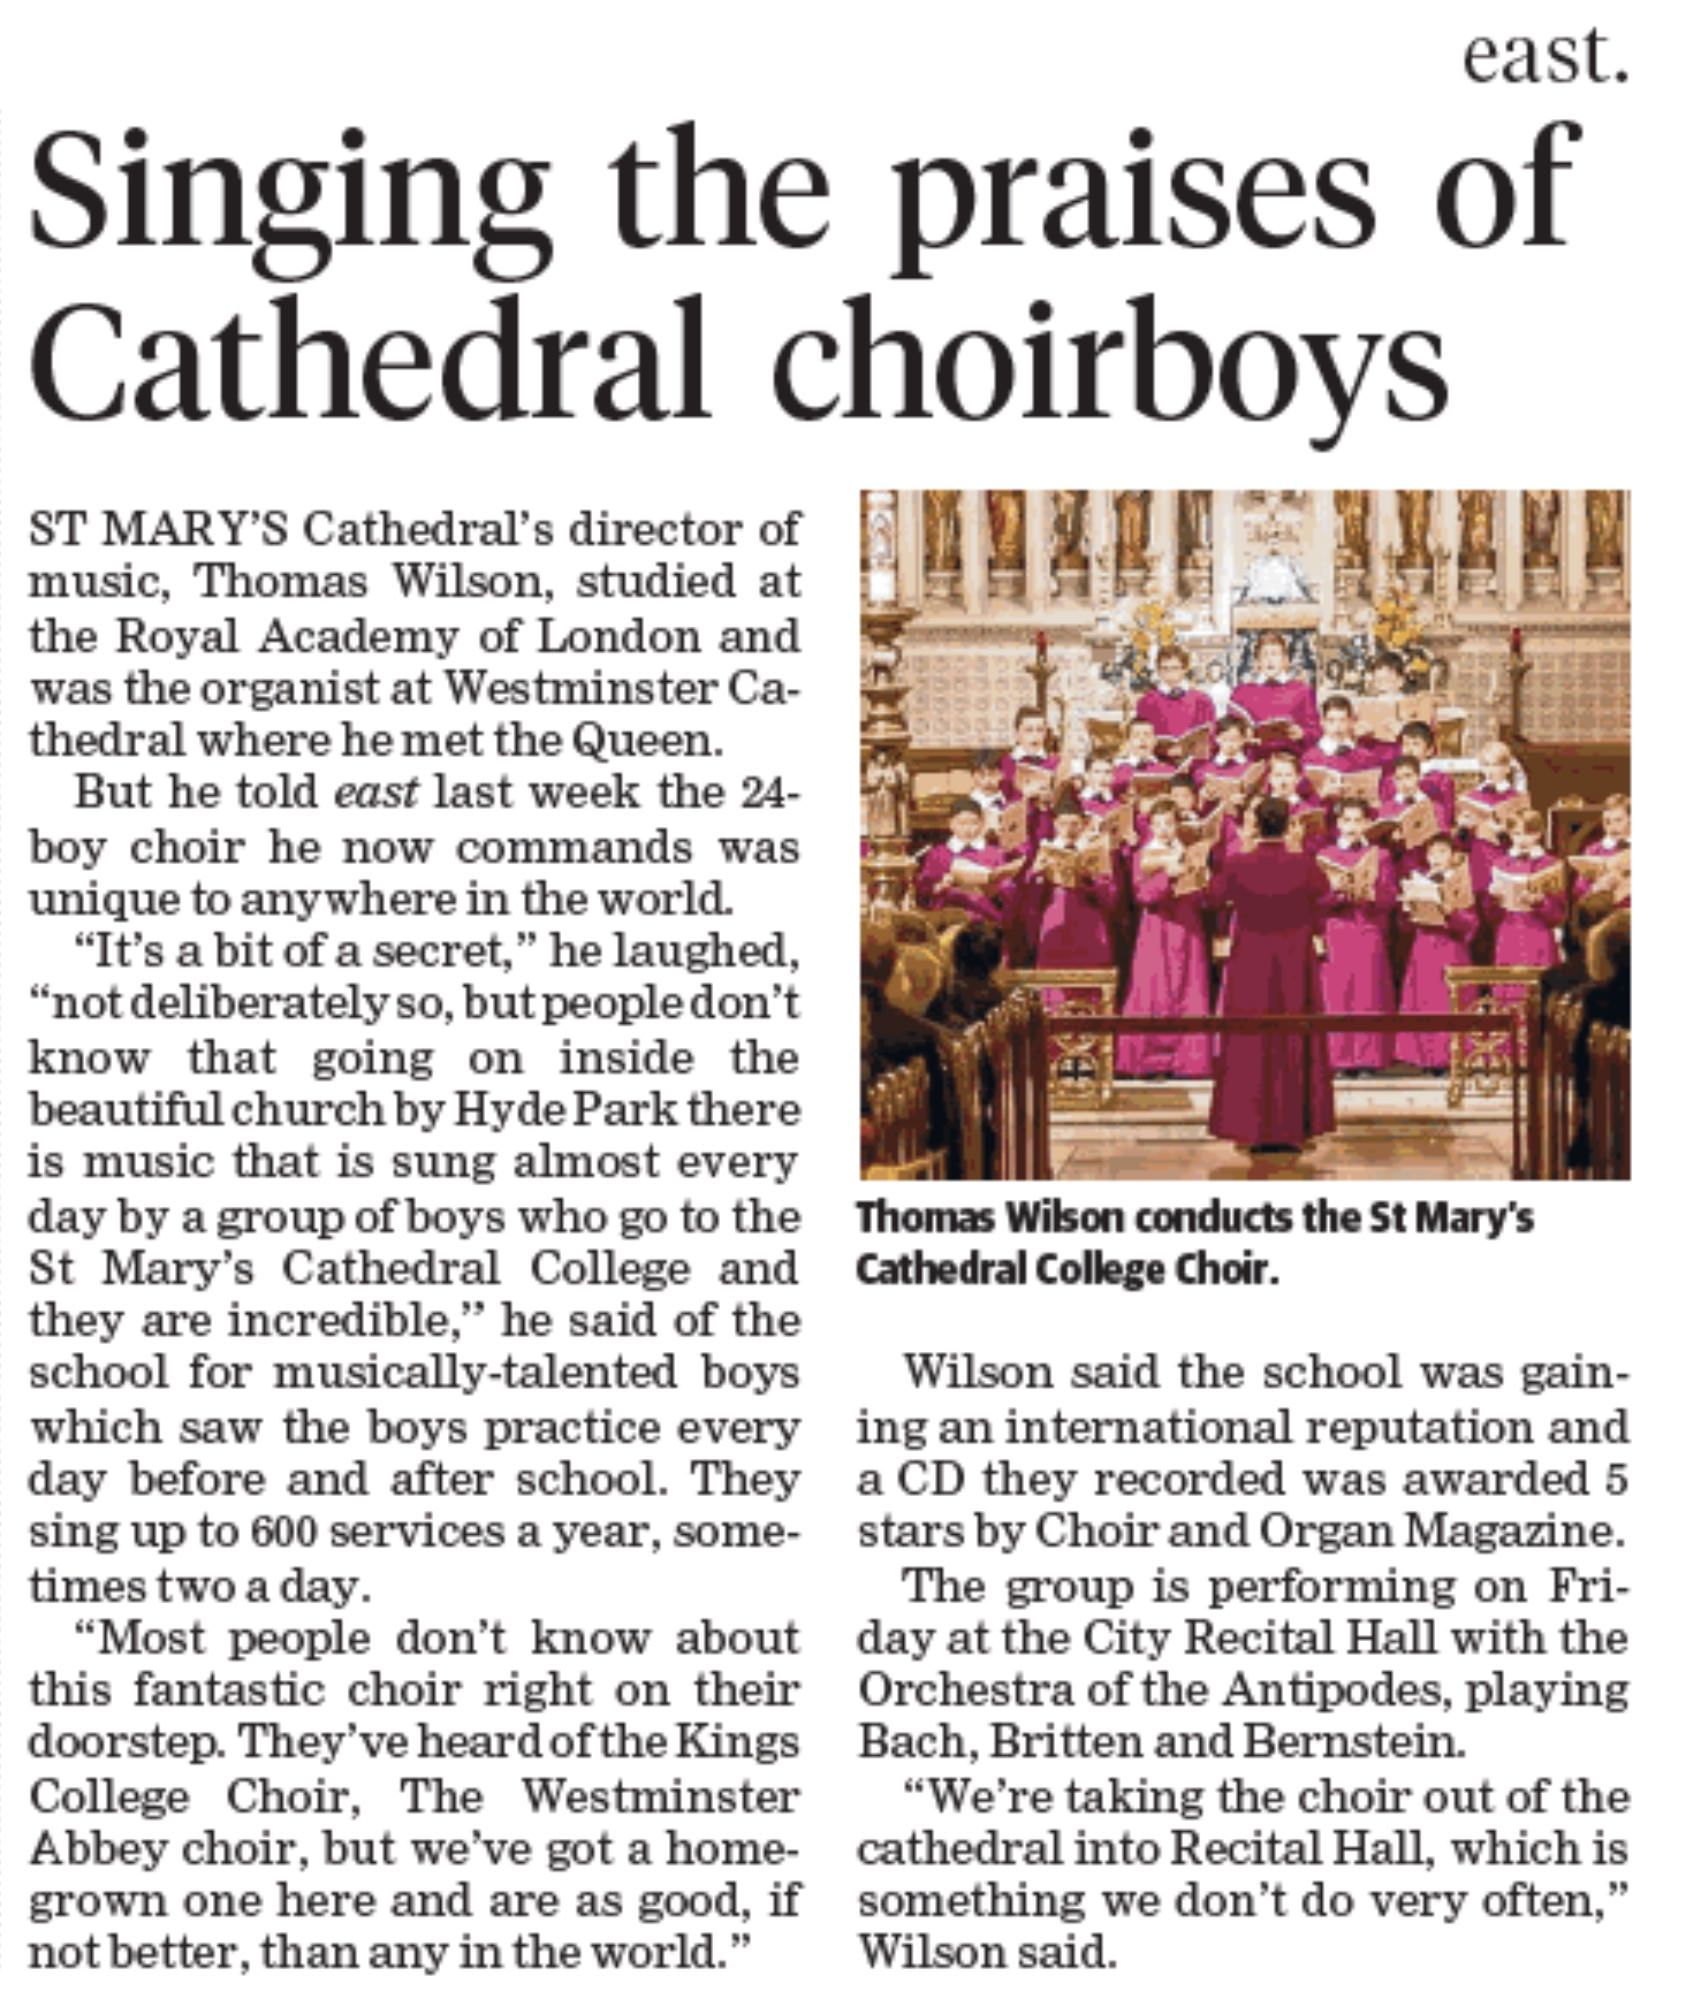 Wentworth Courier , 'Singing the praises of Cathedral choirboys', 28th June 2017.